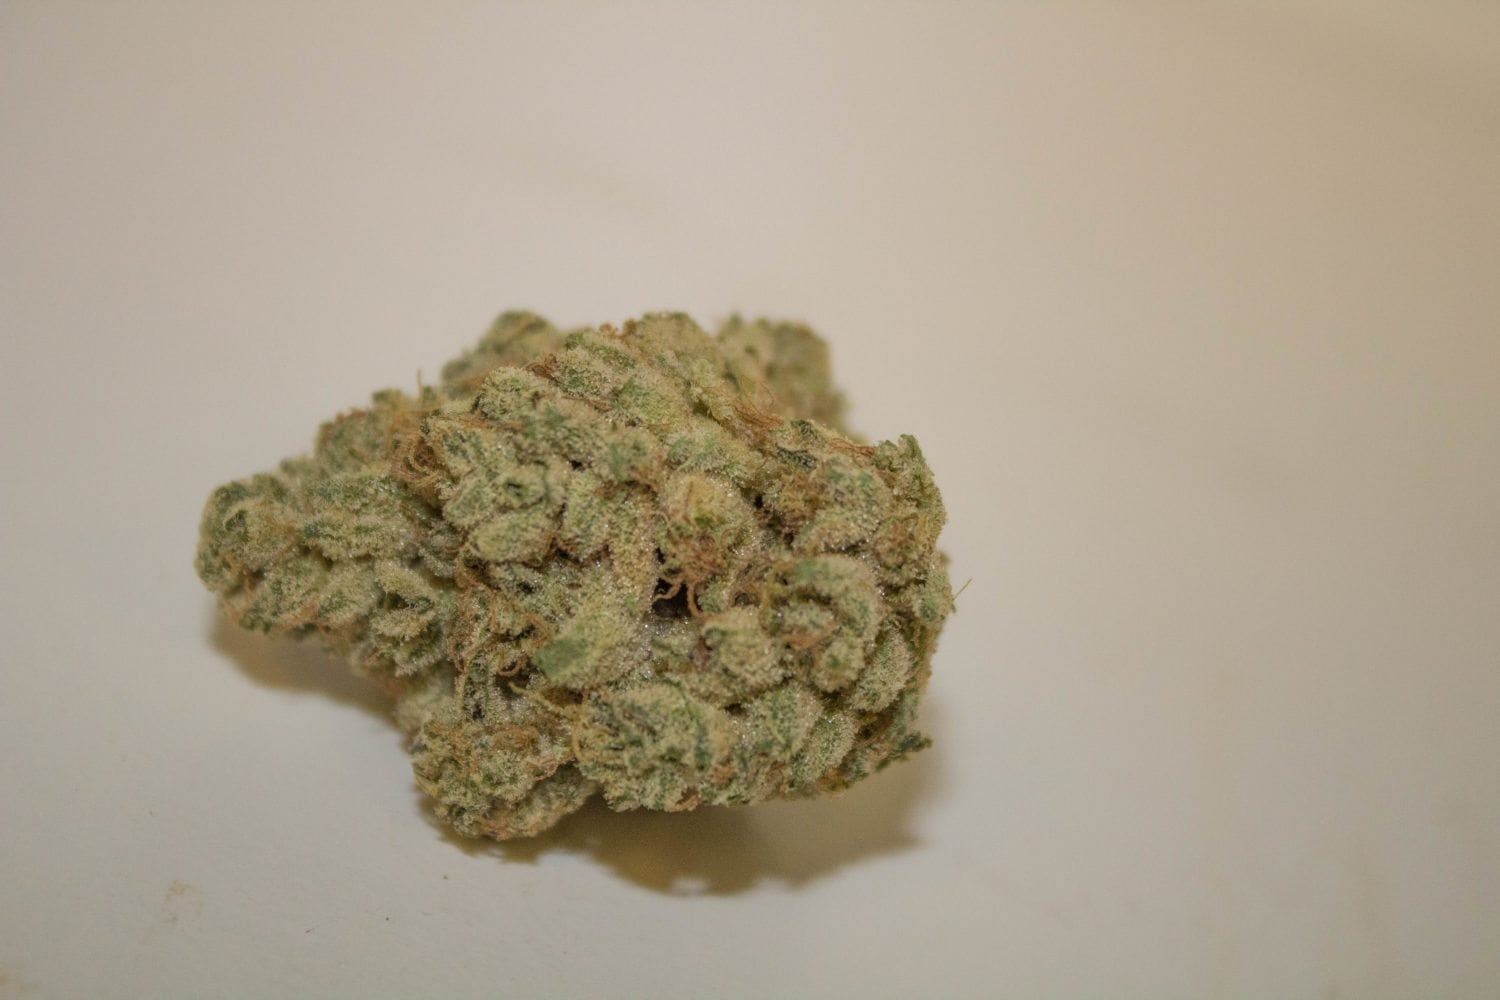 A Real Review Of Exotikz Wedding Cake: The Dankest Cake On